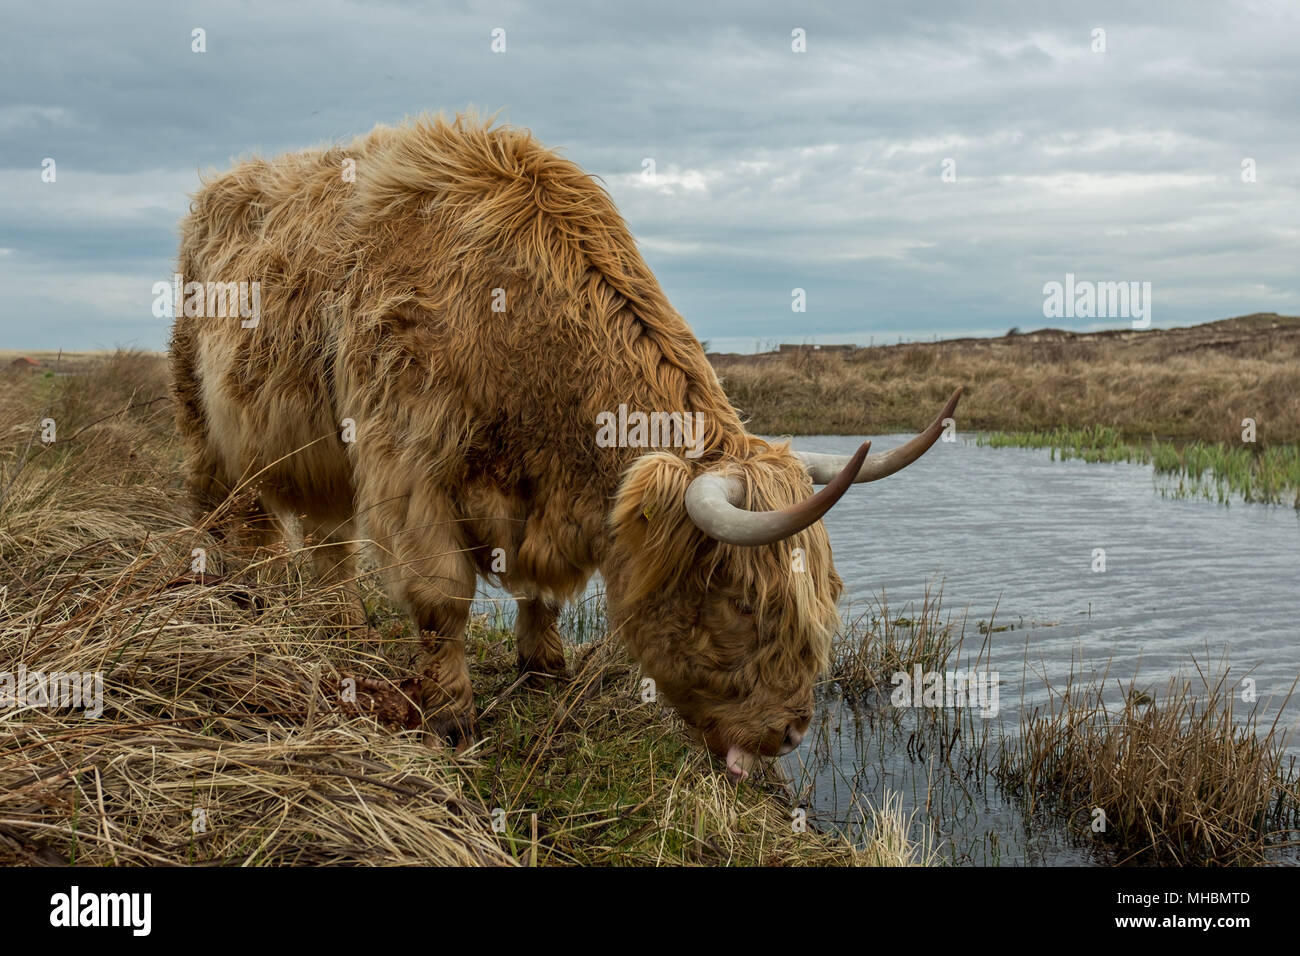 Scottish Highland cow in the Dunes of Texel, The Netherlands. - Stock Image